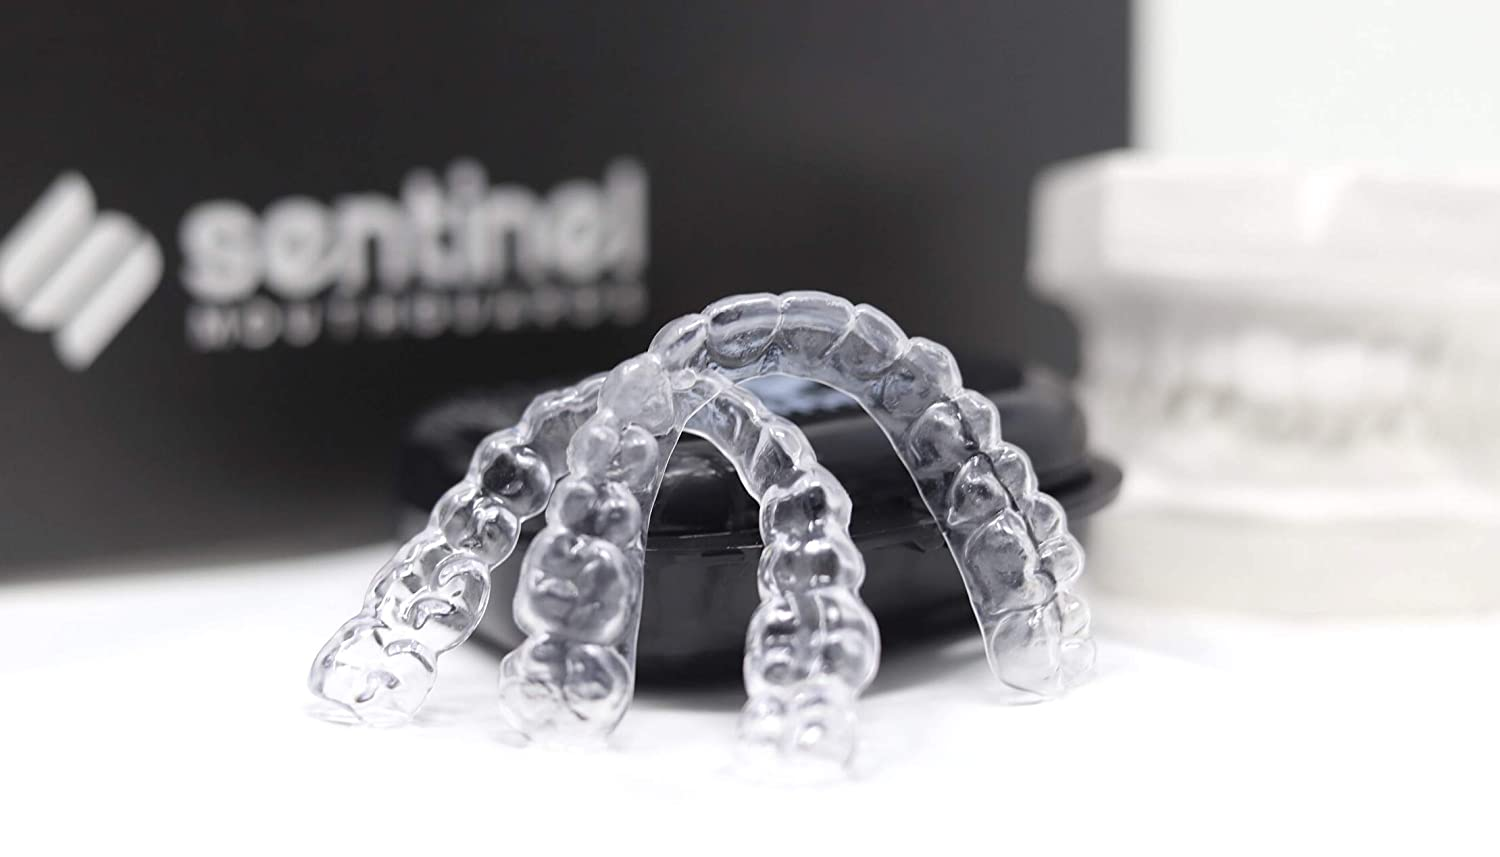 Sentinel Mouthguards Custom Clear Essix Plus Dental Retainers | Upper and Lower Replacement Orthodontic Retainers | Keeps Teeth Straight After Braces | Made in USA |